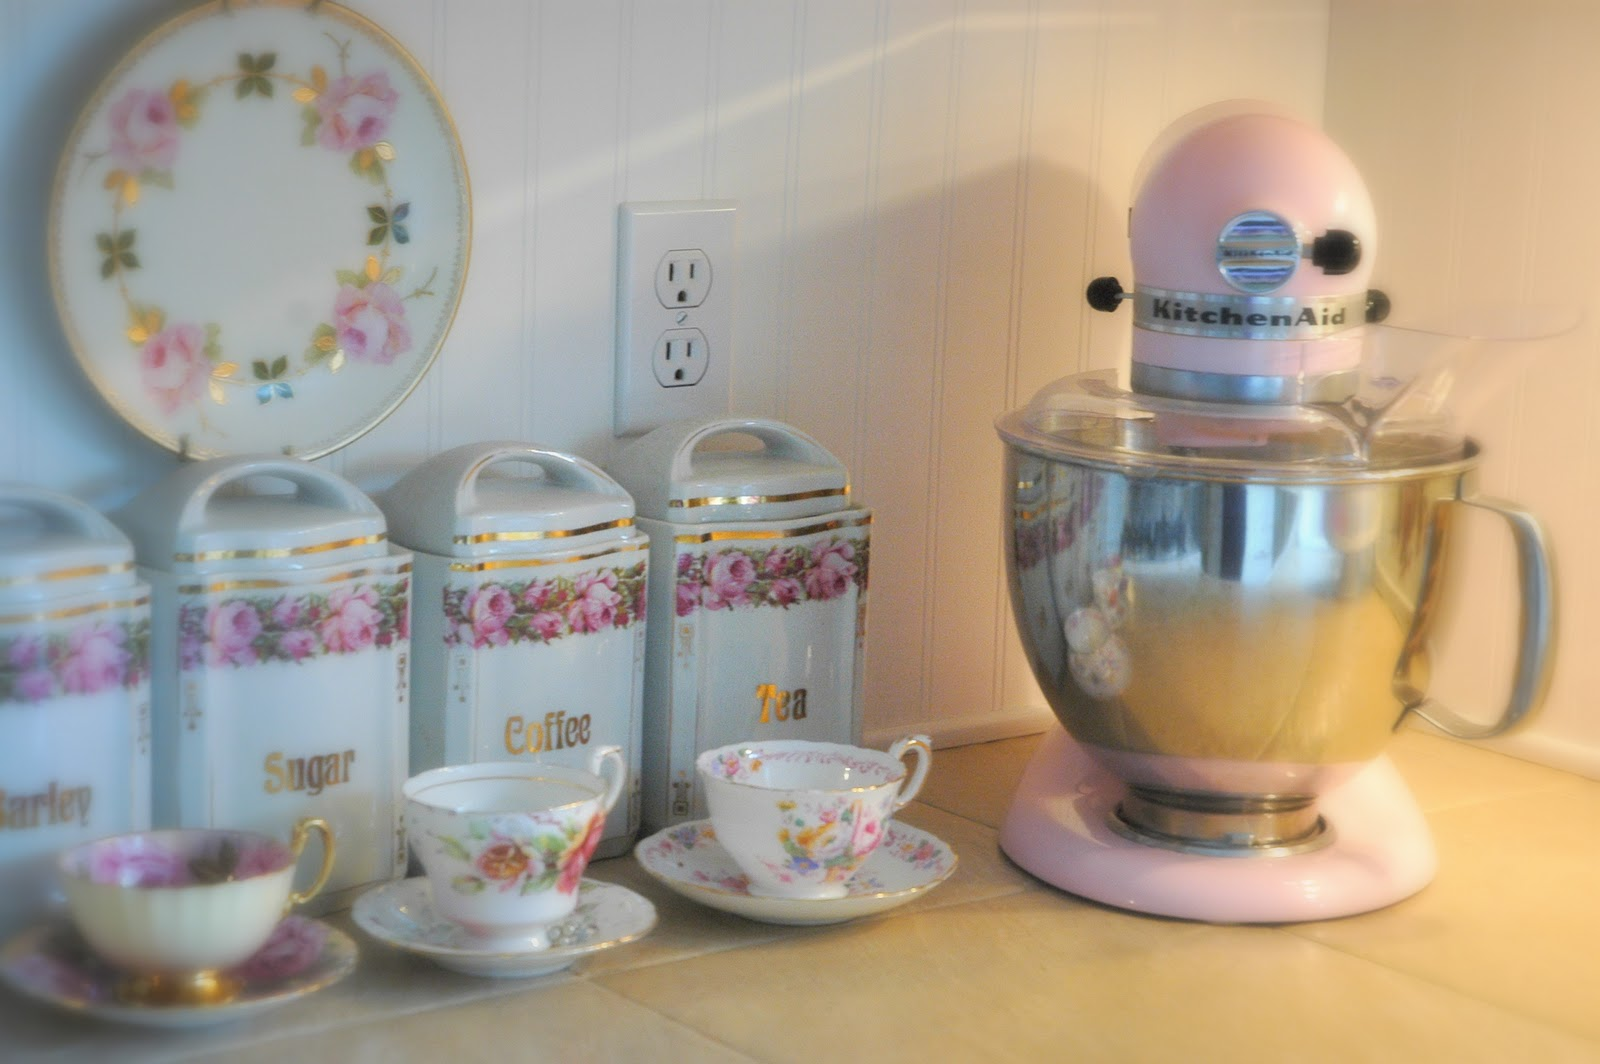 Pink Kitchen Aid Mixer Girl In Pink Pink Kitchen Tools Welcome Frog Knick Knacksnot